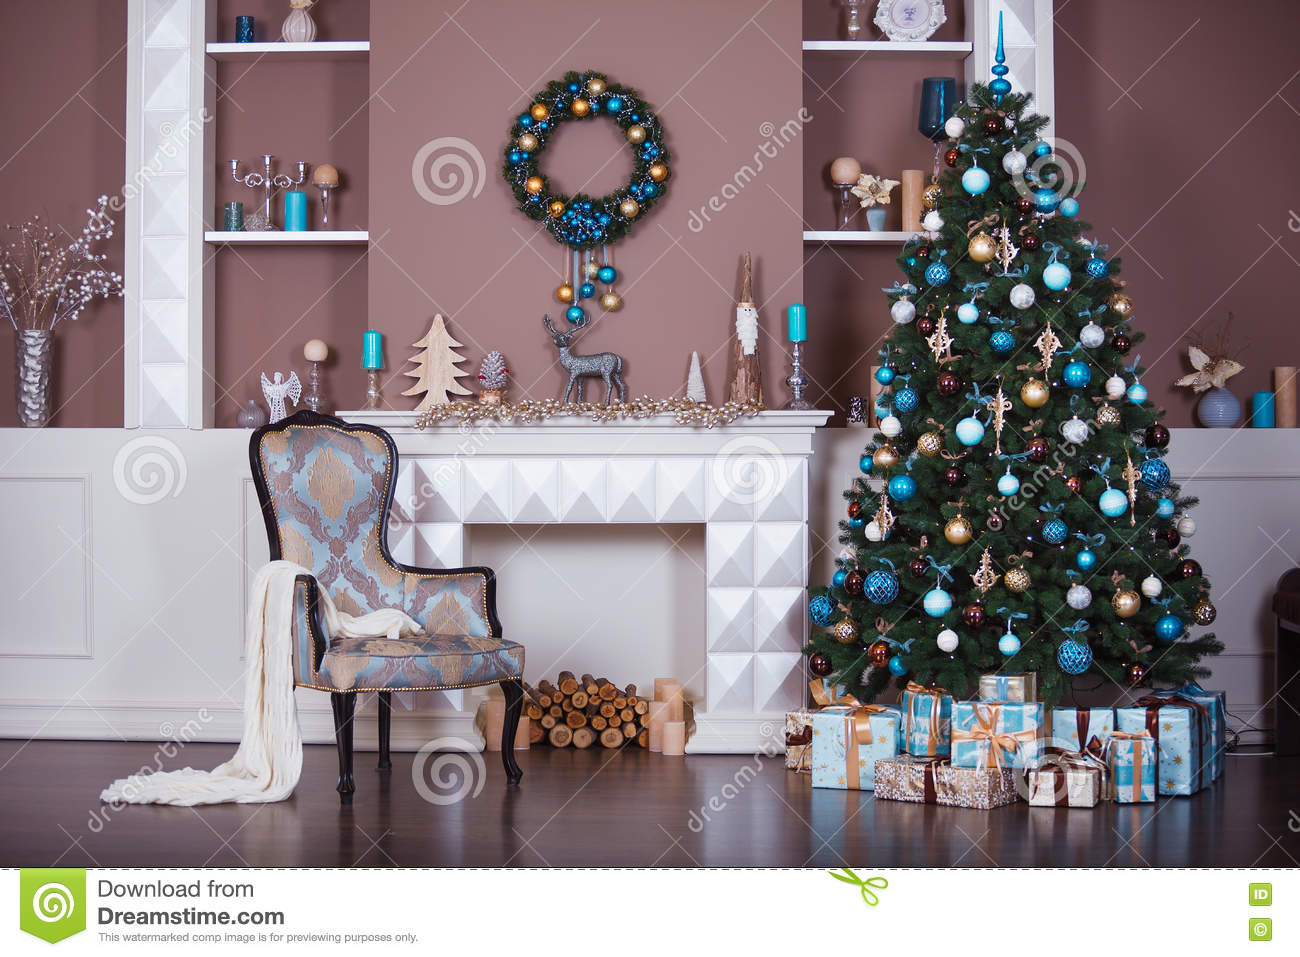 christmas background interior room decorated in xmas style no people new year tree